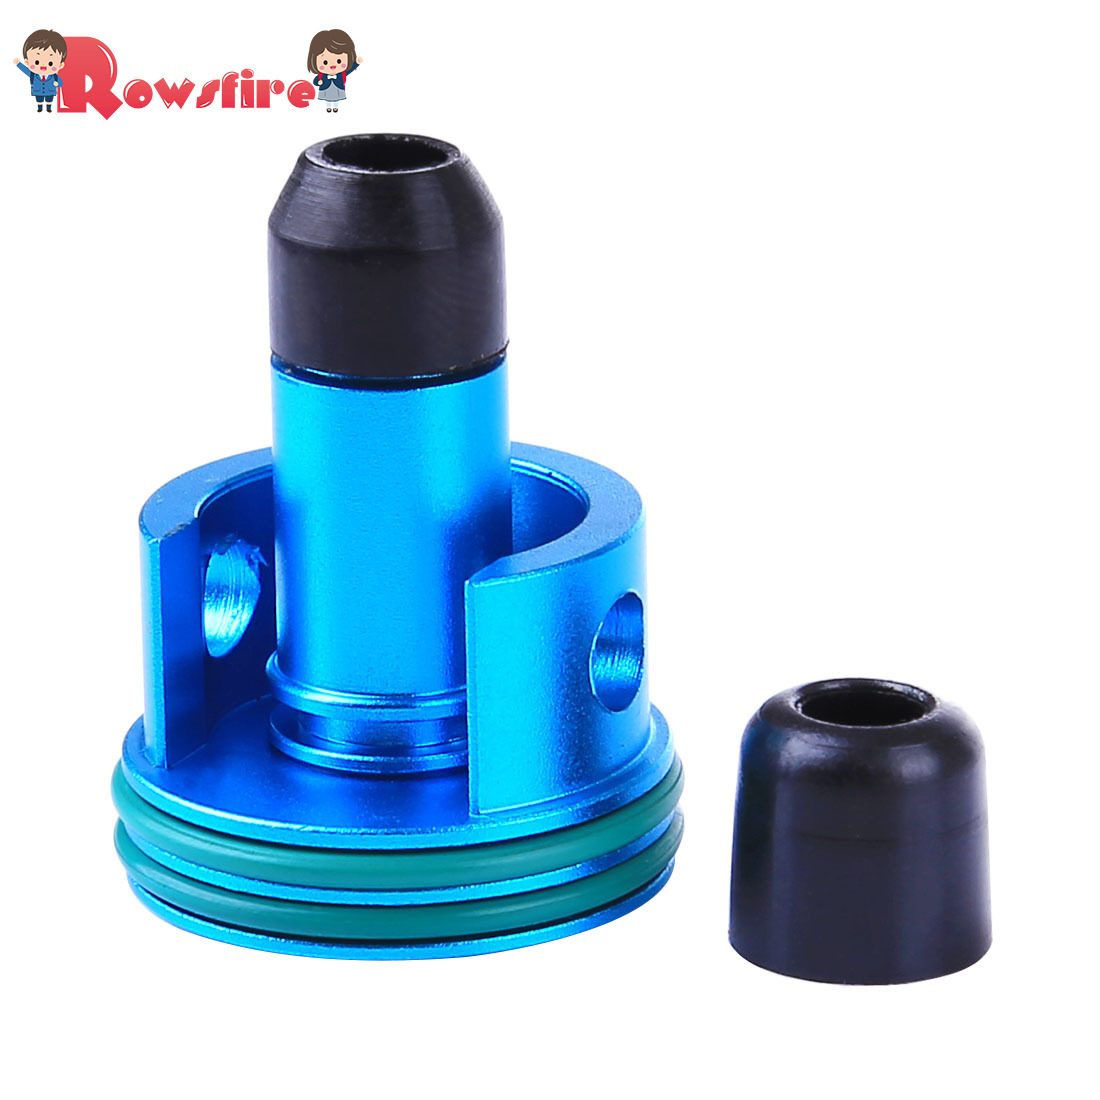 Metal Air Cylinder Head and Inner O Ring Air Seal Nozzle for Jingji SLR/RX <font><b>AK47</b></font> Water Gel Beads Blaster - Blue image